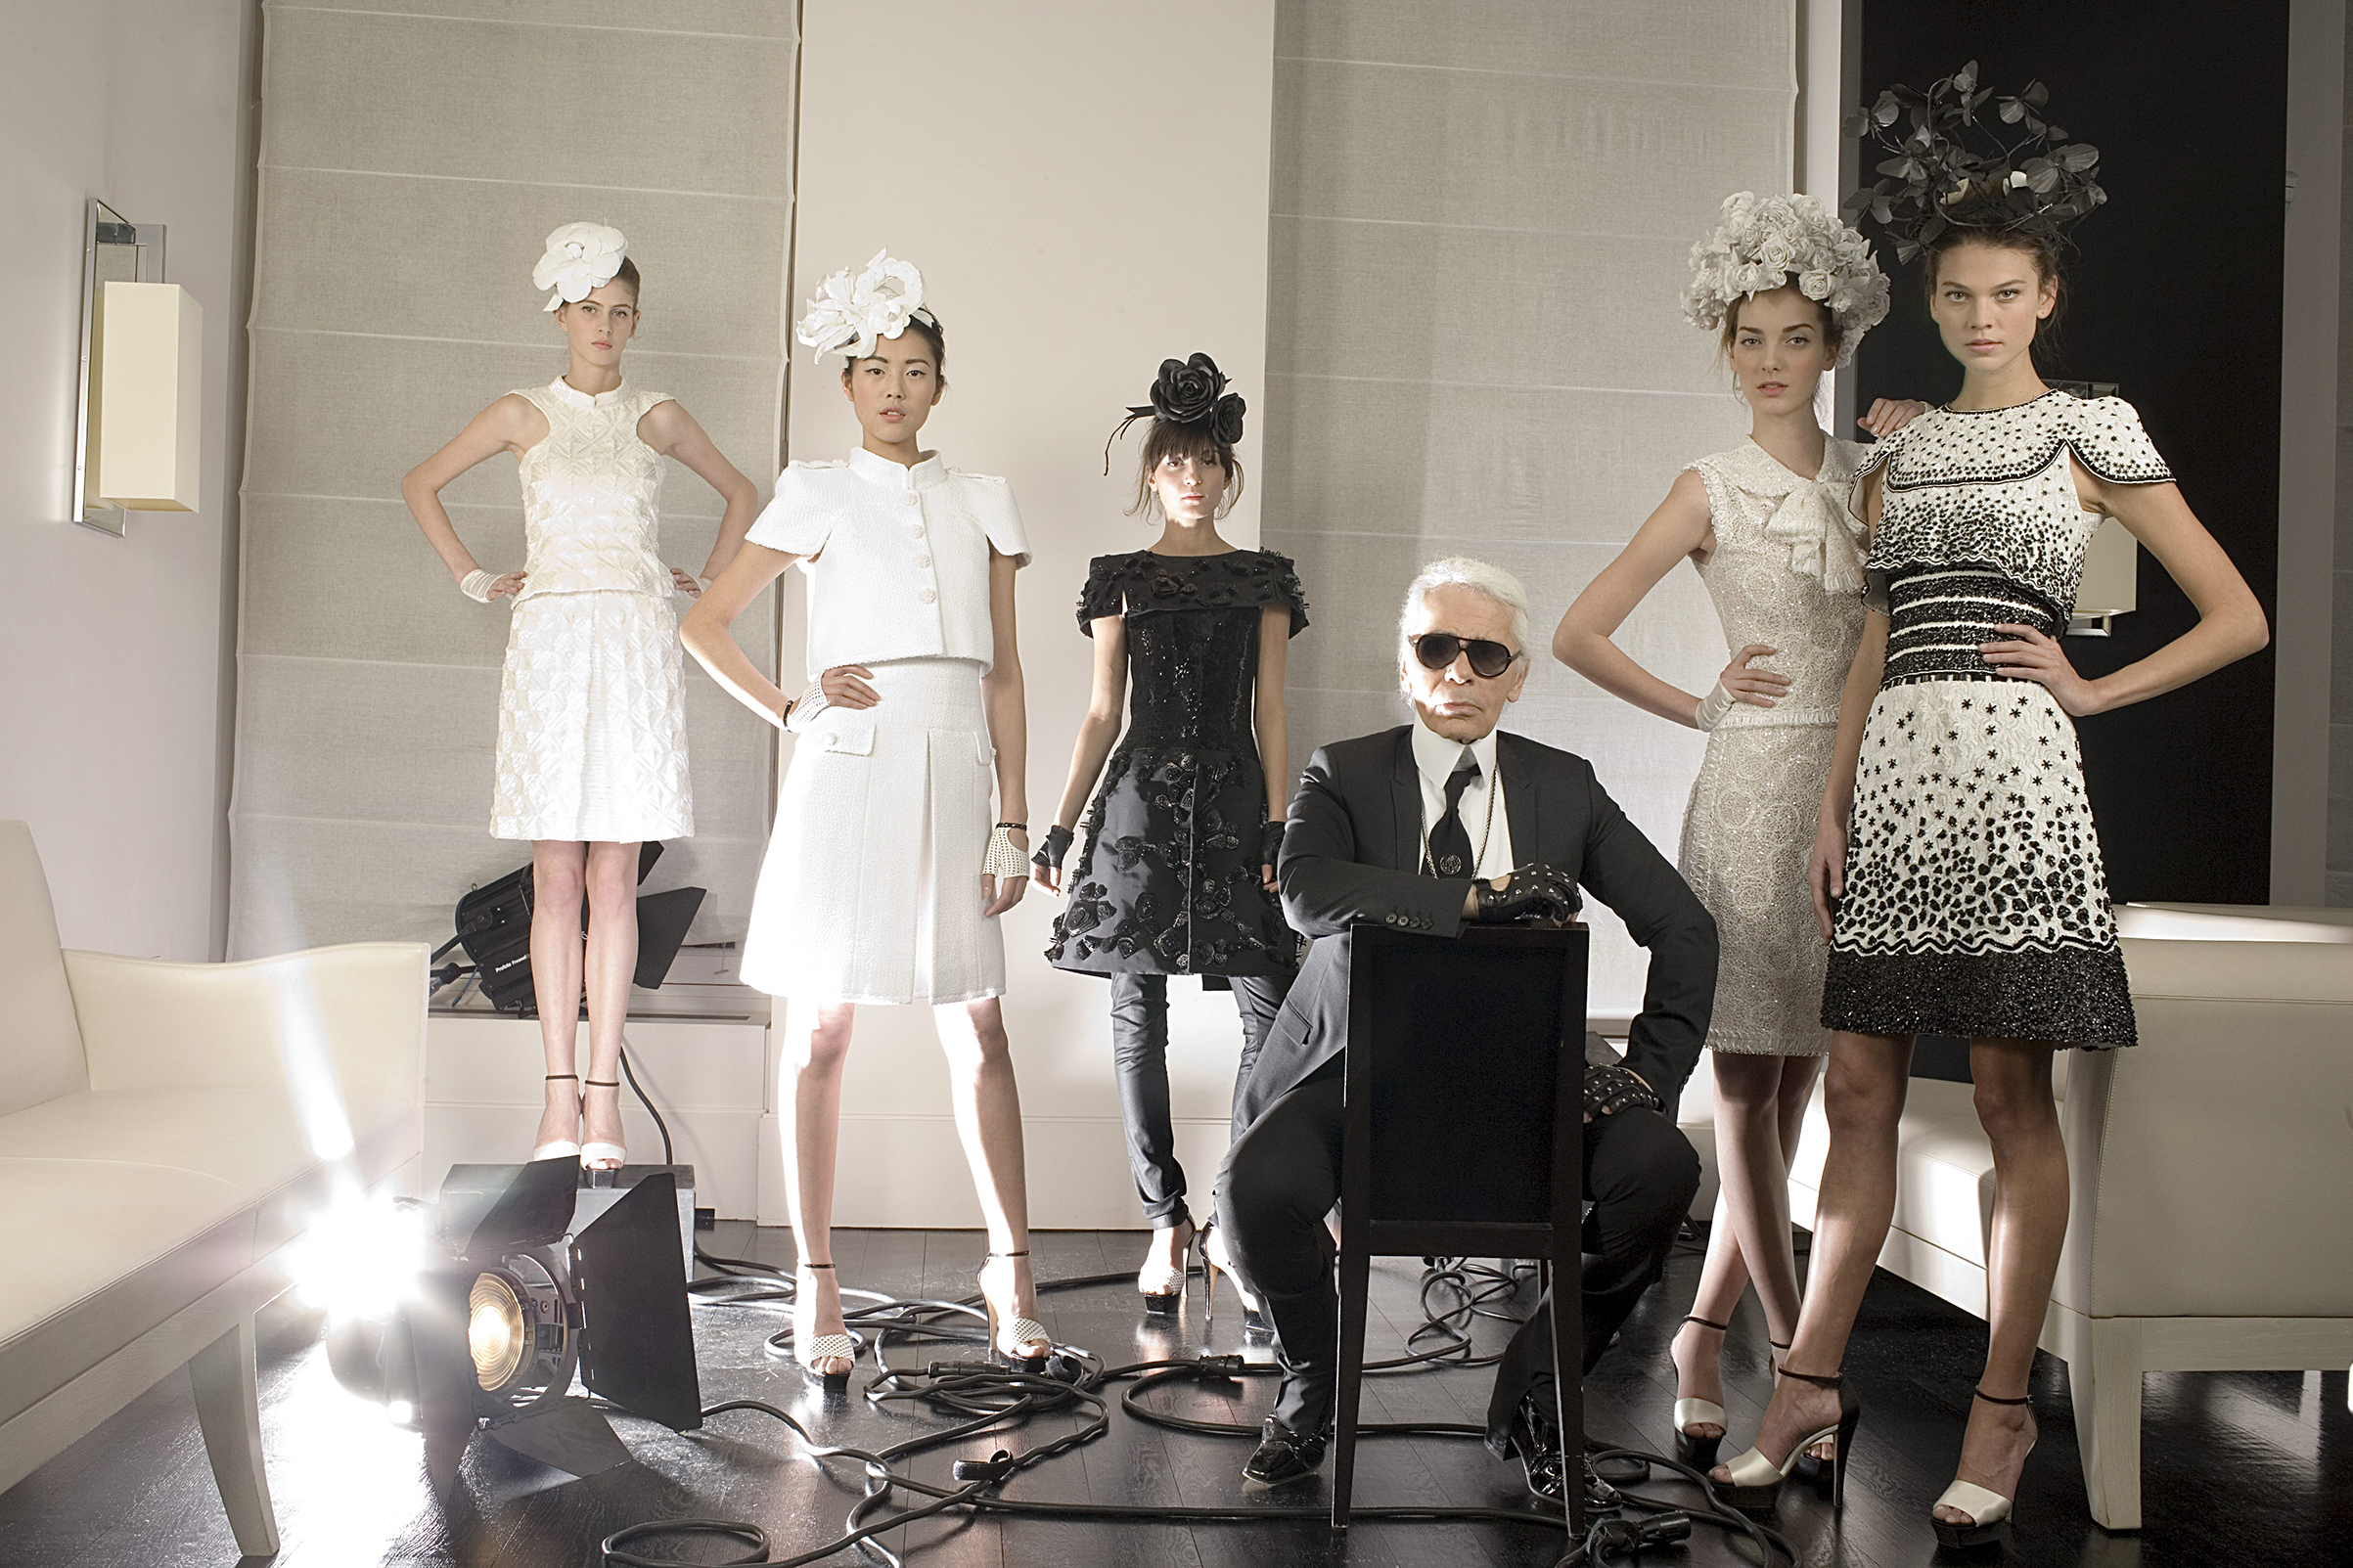 Lagerfeld in Paris in 2009 with models wearing his work for Chanel